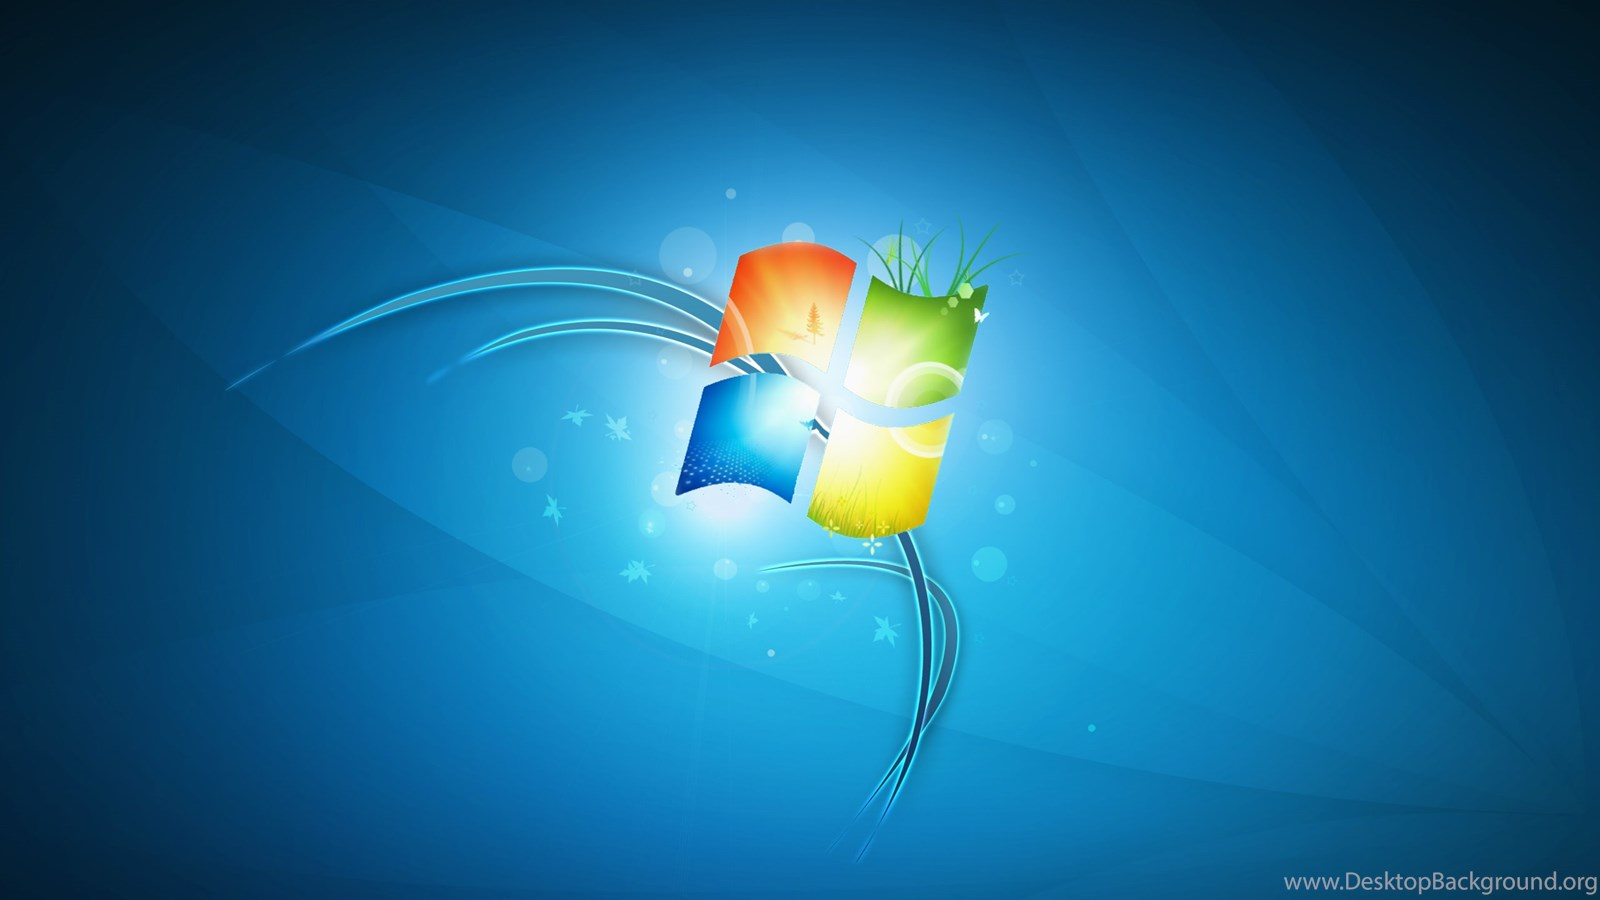 Windows 7 Ultimate HD Wallpapers Images New Desktop Background